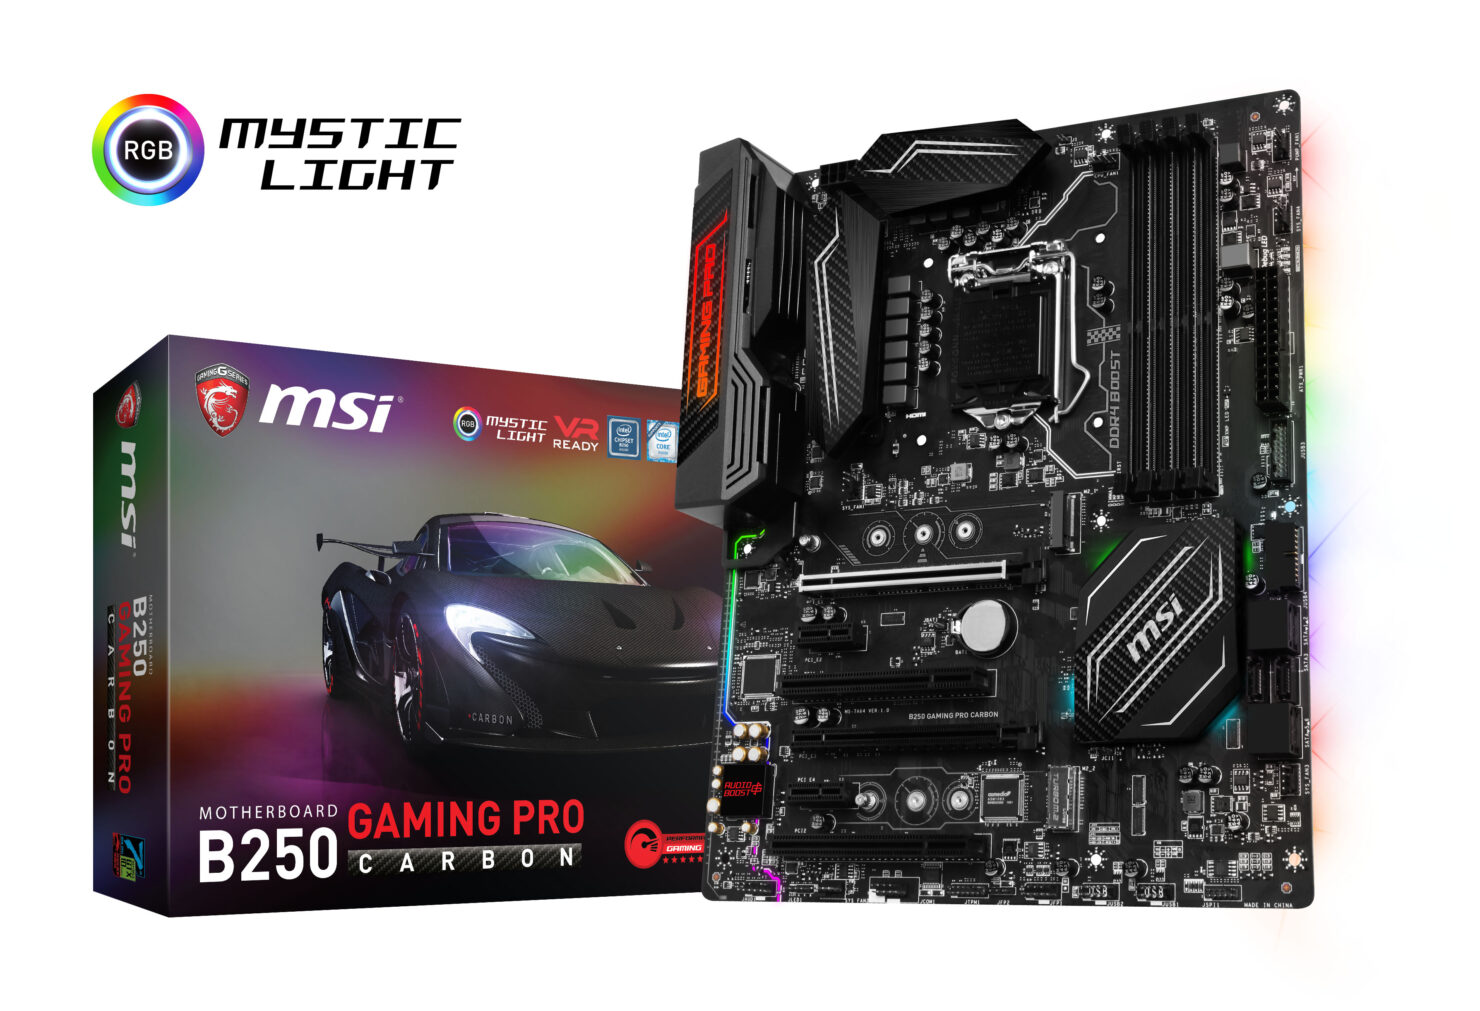 msi-b250_gaming_pro_carbon-product_picture-box